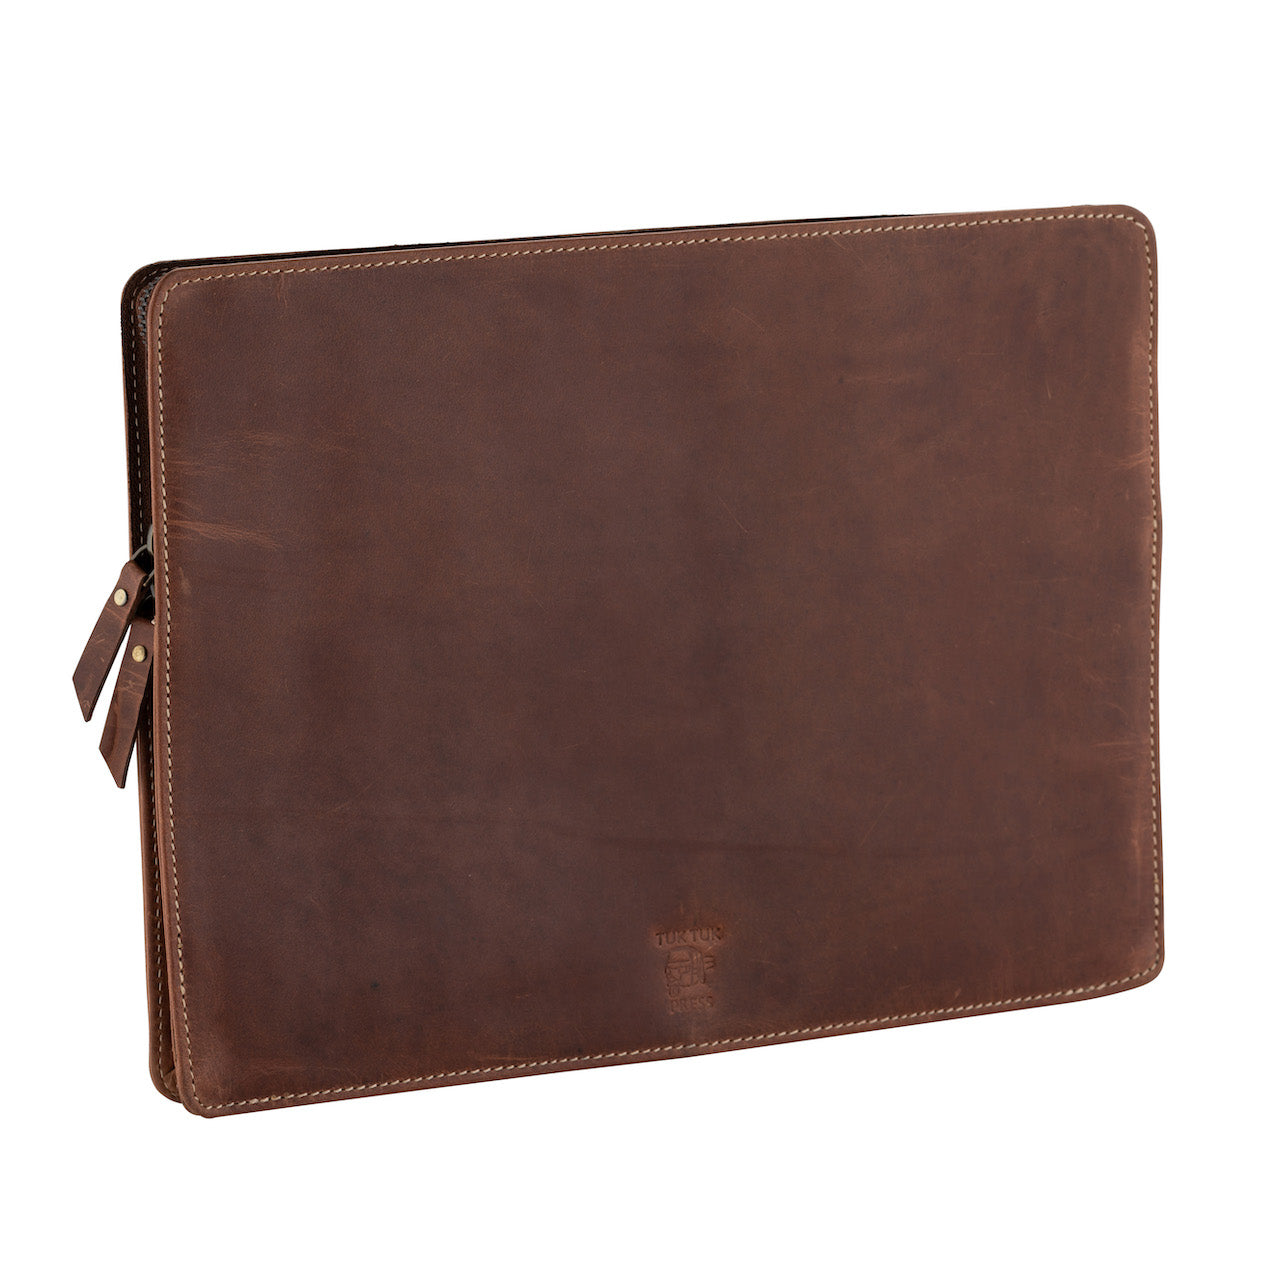 Handmade Buffalo Leather Luxury Laptop Sleeve